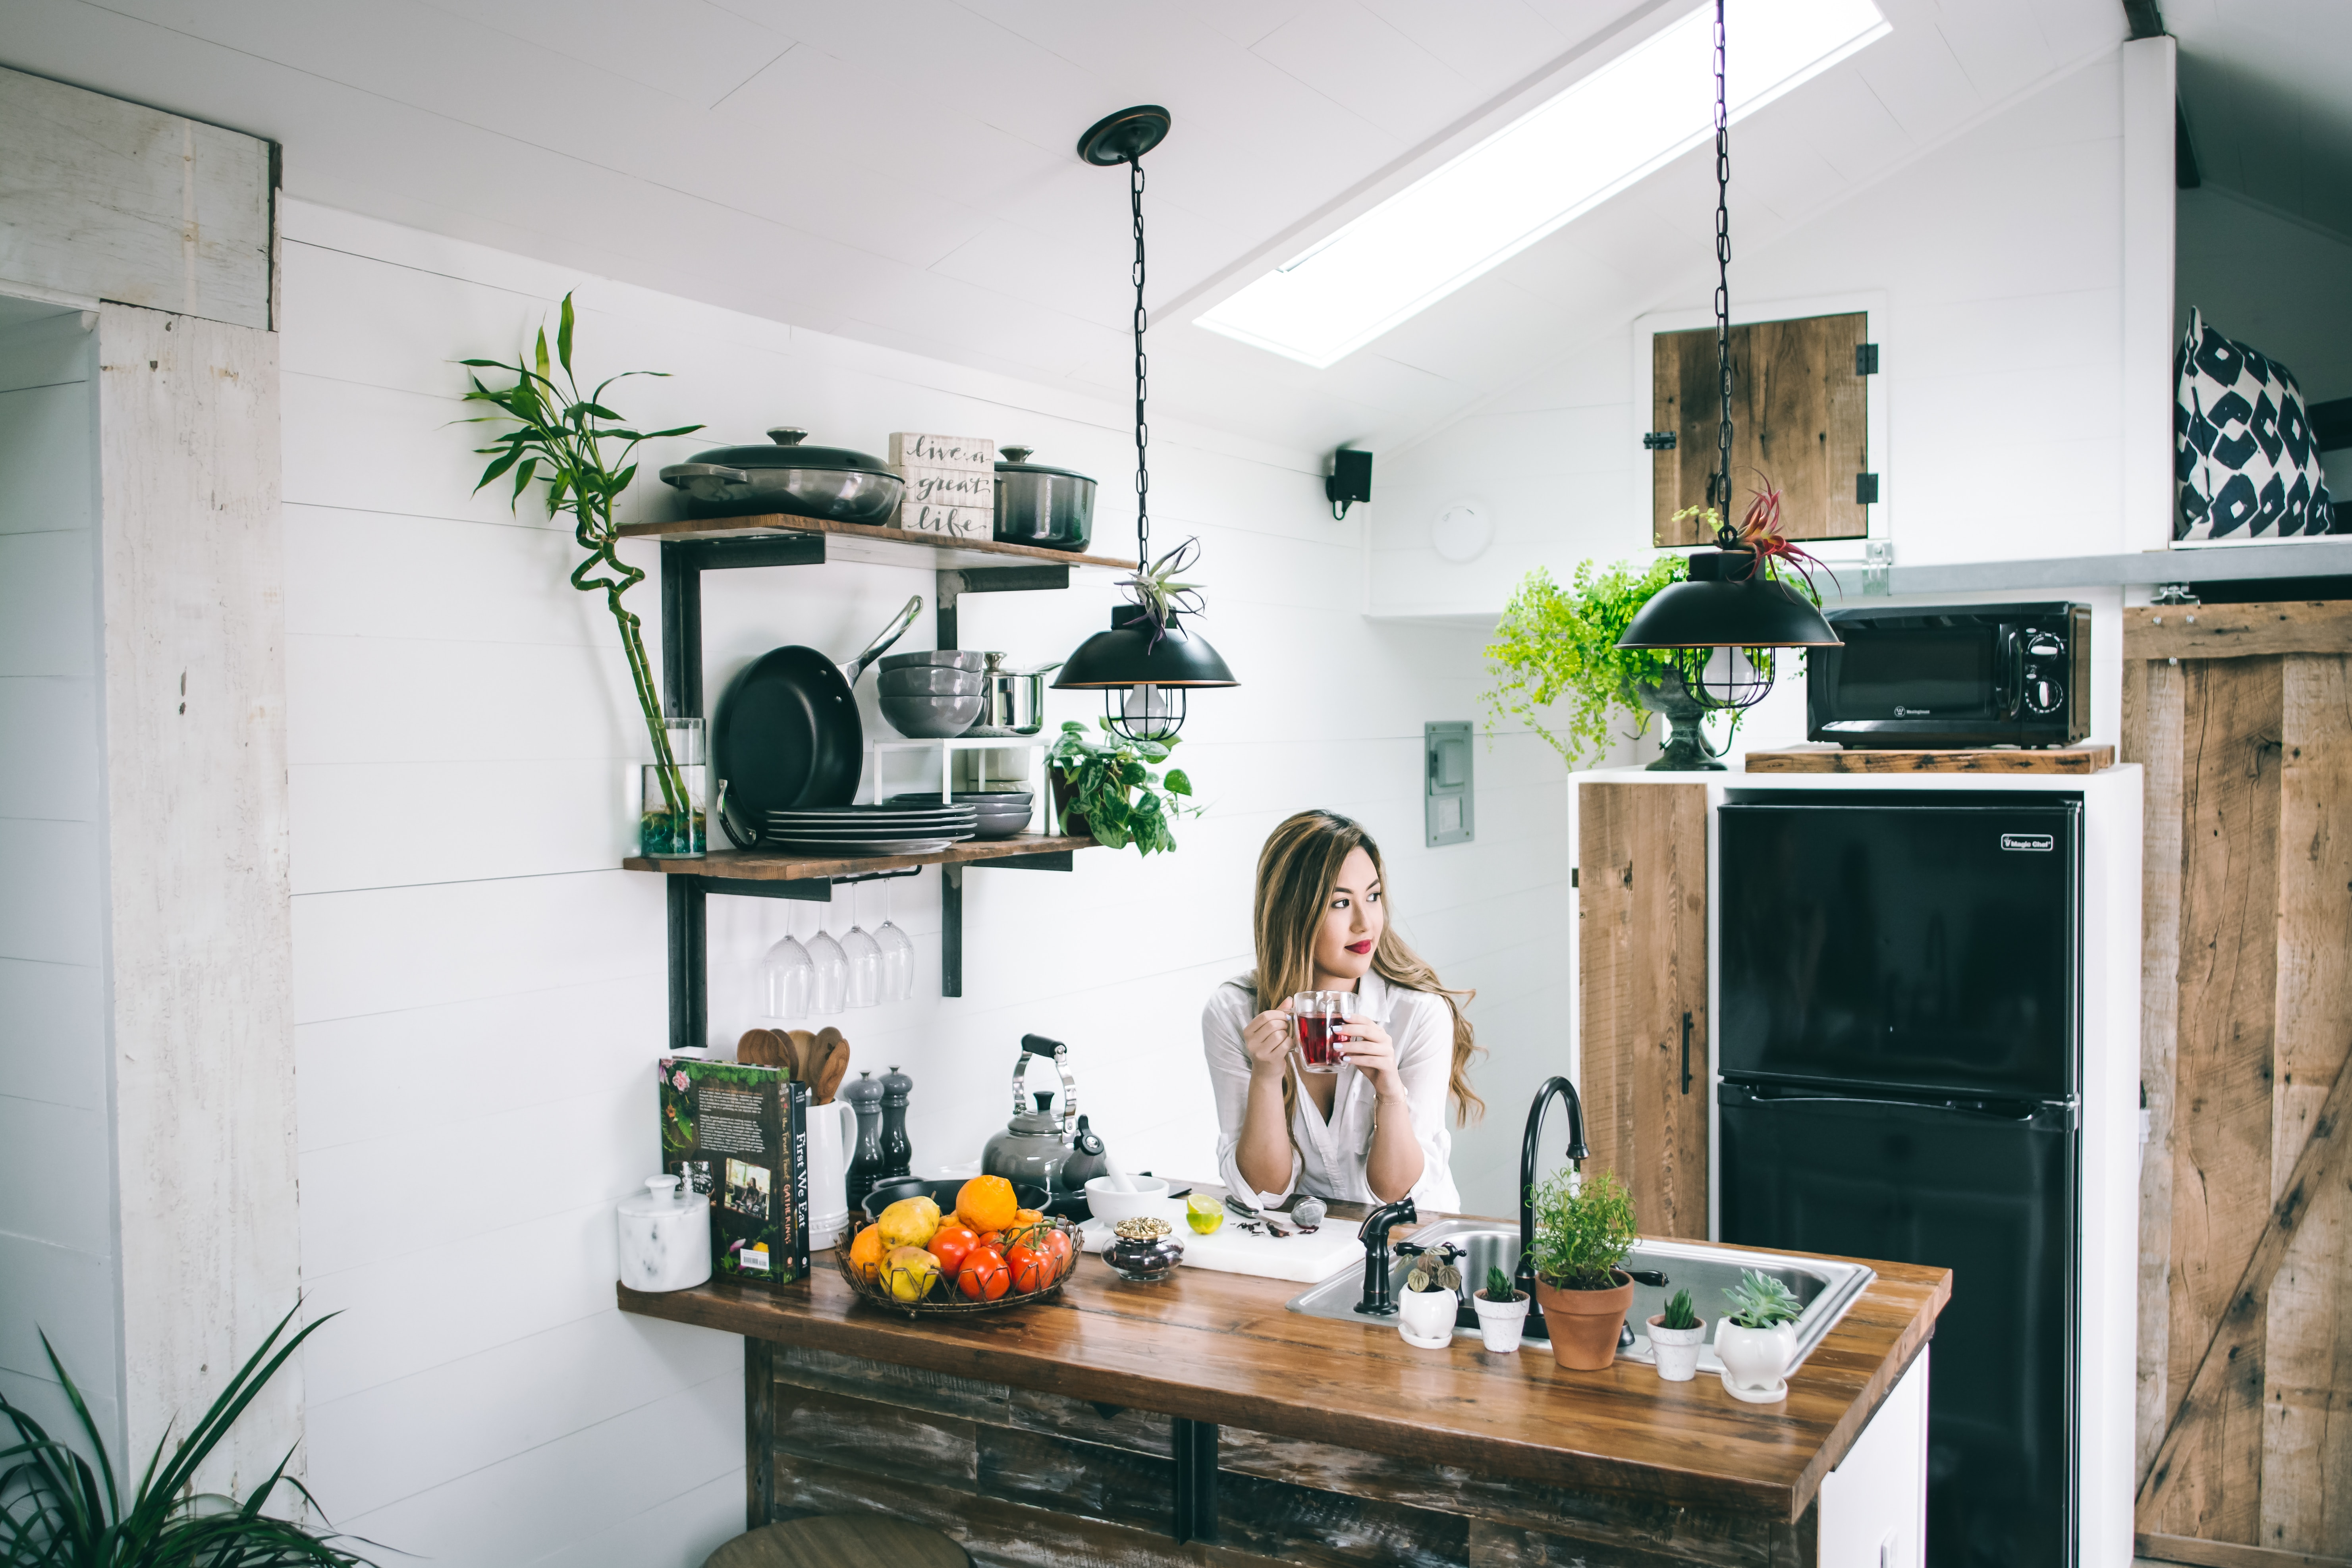 6 Eco-Friendly Ideas for Your Next Home Remodeling Project. Photo by Tina Dawson from Unsplash